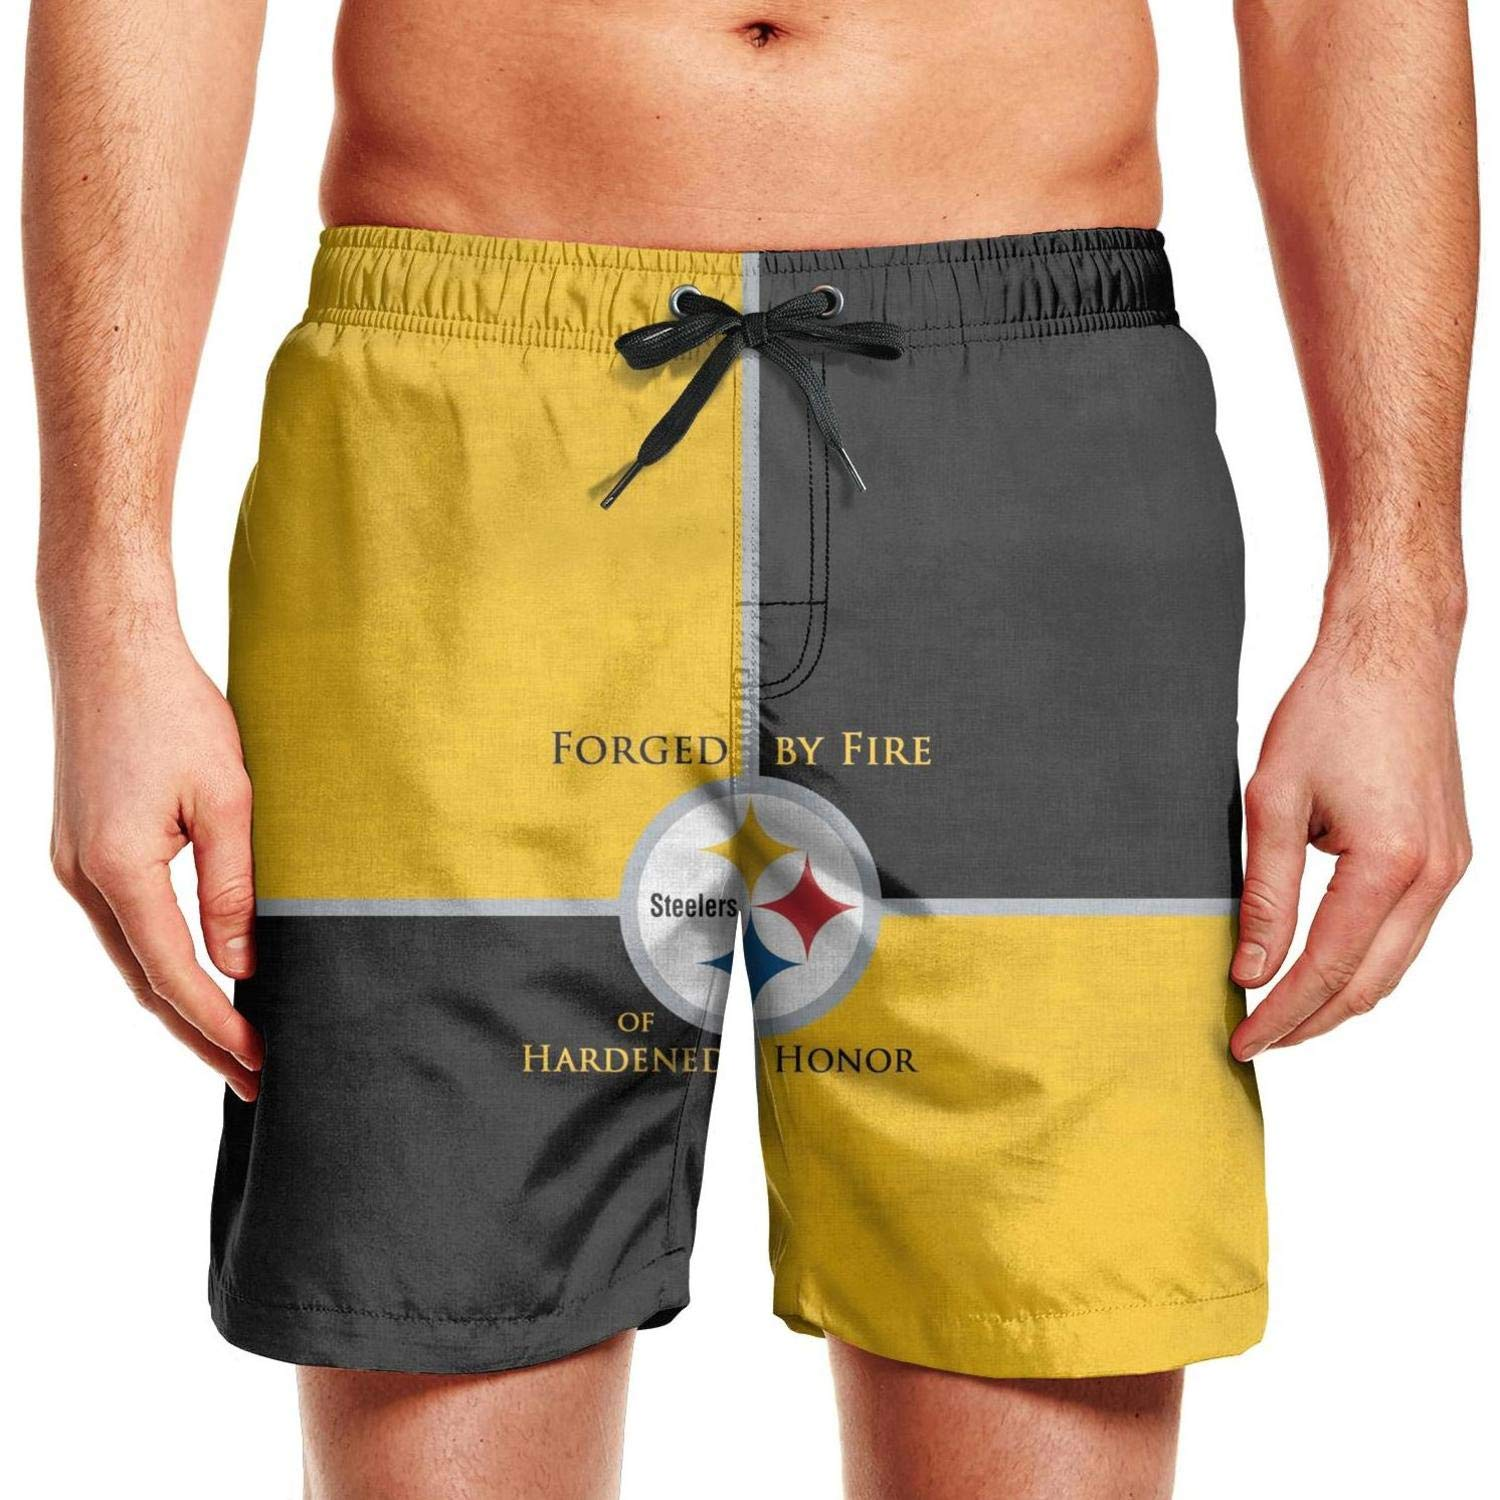 Pittsburgh Steelers Champion Fans Poster Mens Track Swim Hawaiian Shorts